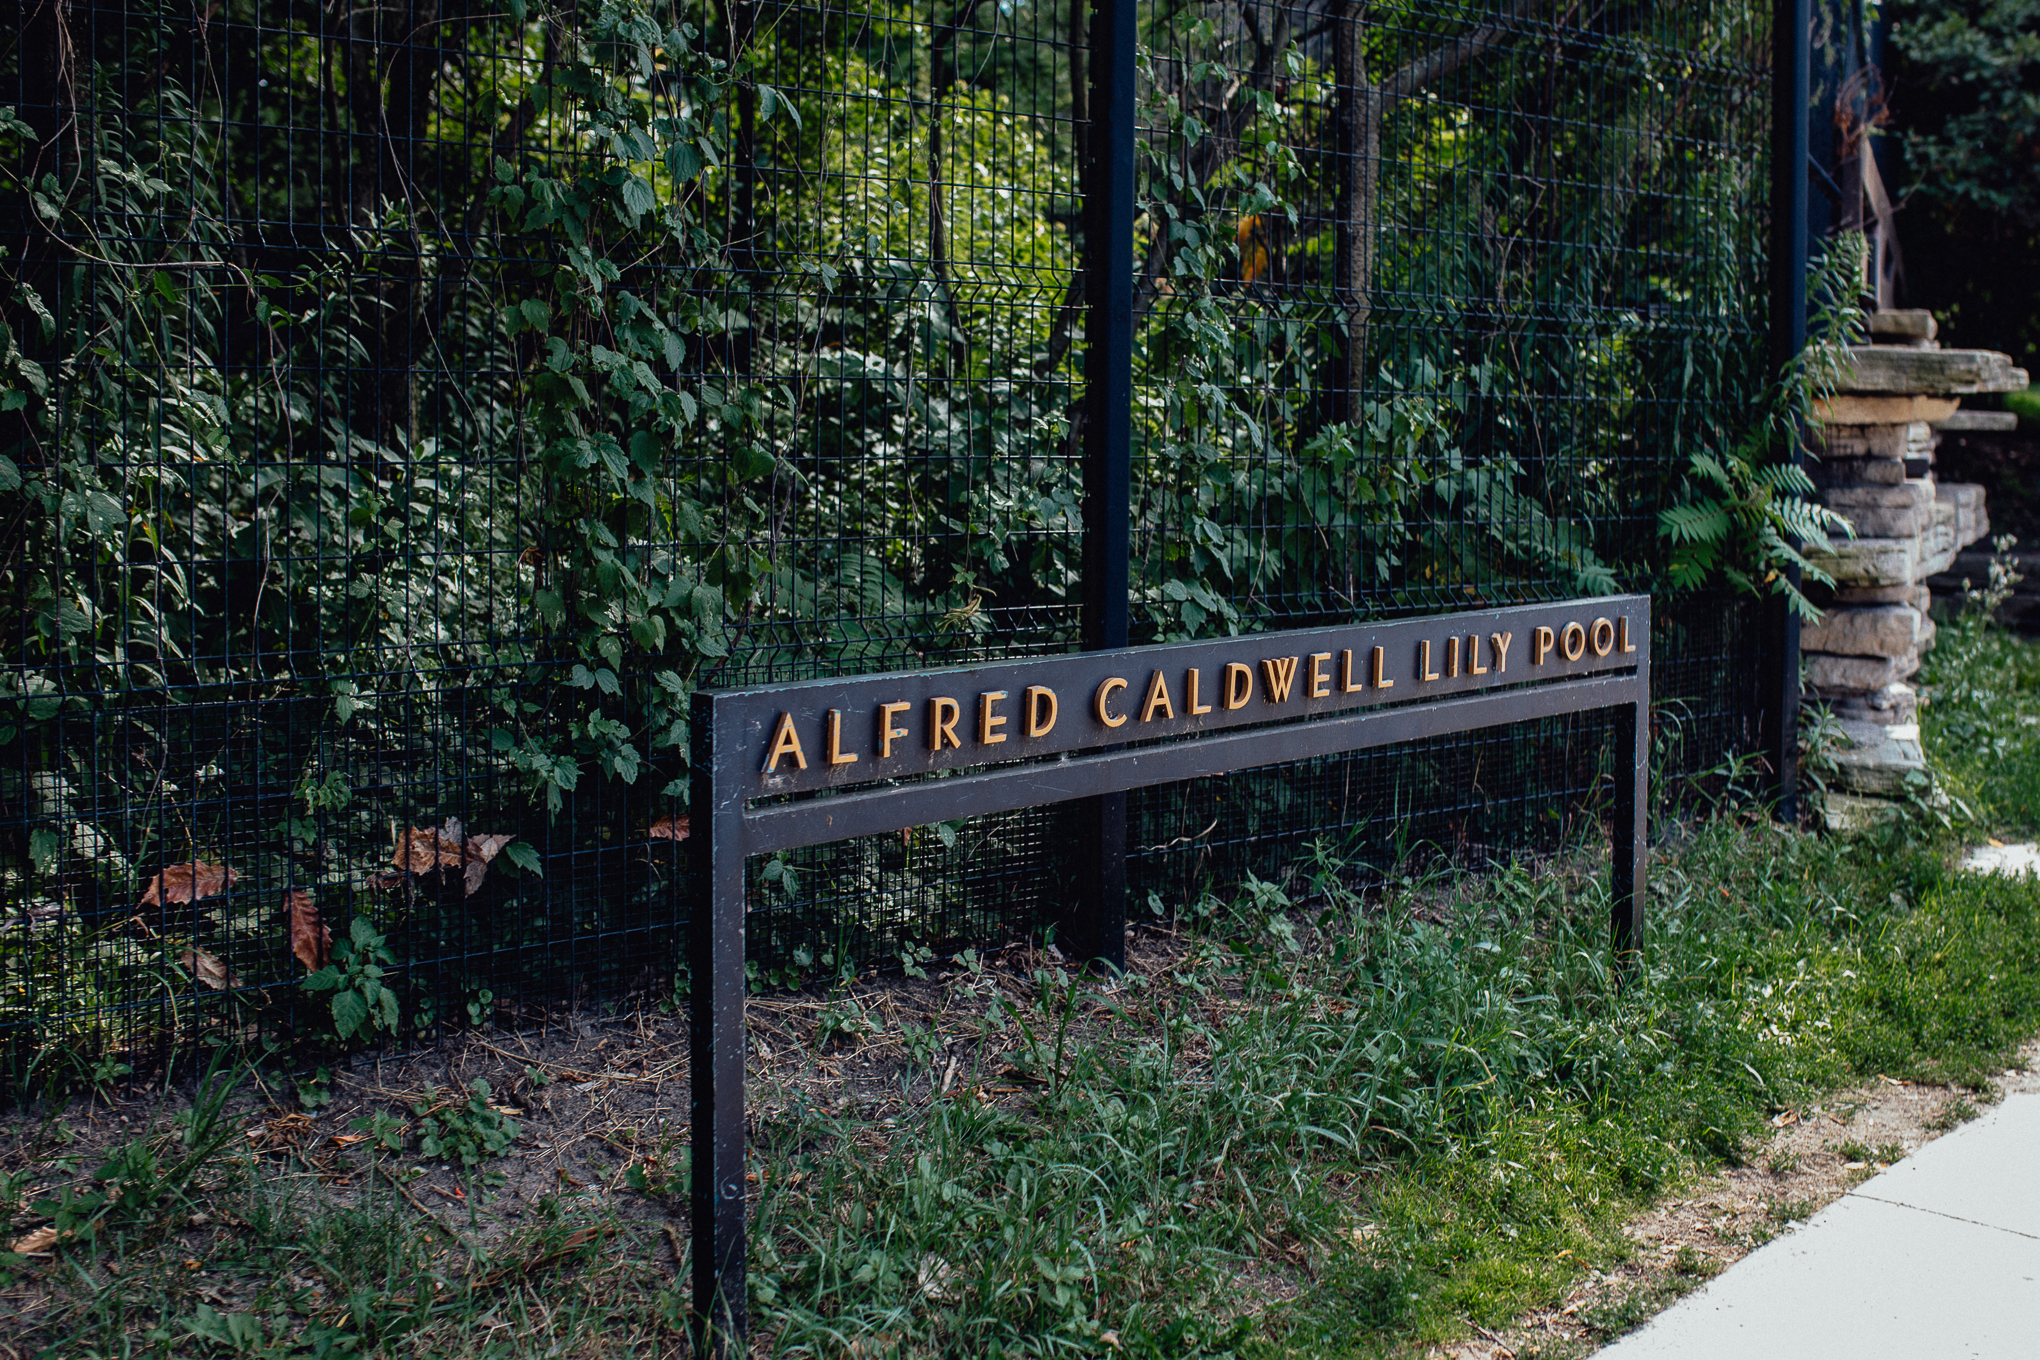 Alfred-caldwell-lily-pool-sign.jpg